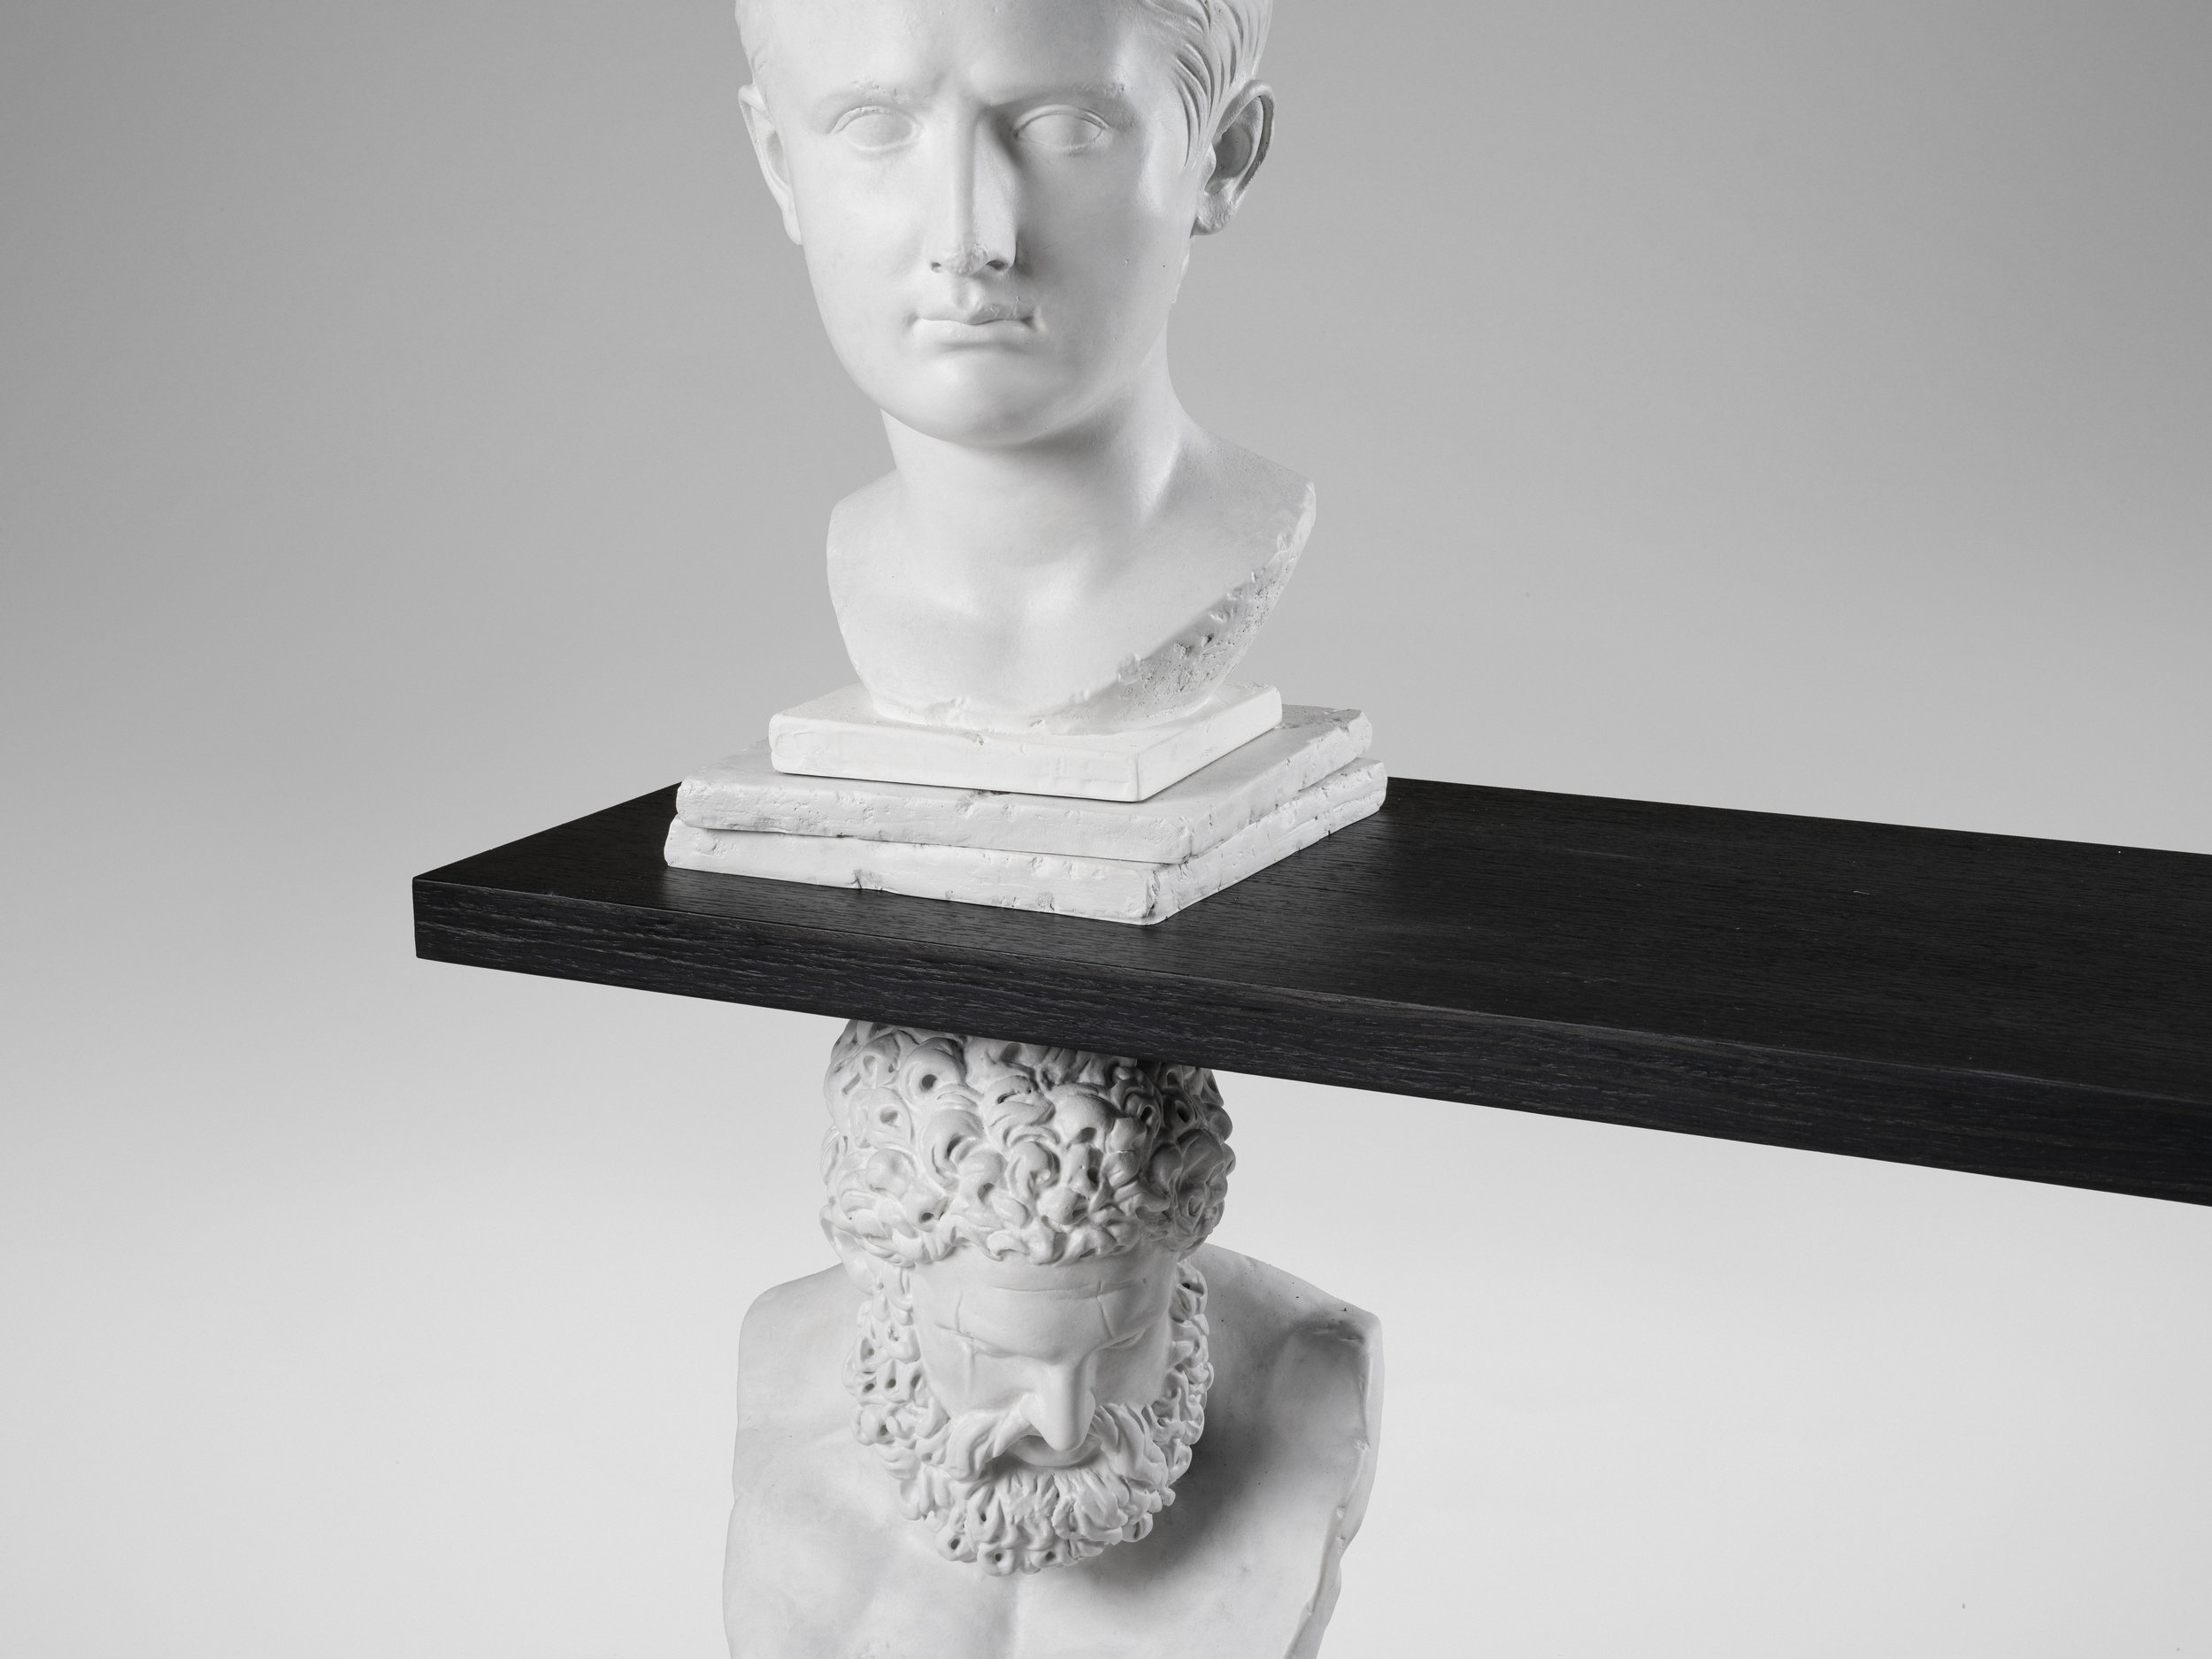 """This work is a part of a new exhibition in David Gill Gallery based at London.The exhibition will showcase Greek and Roman masterpieces from renowned museums, 3D scanned, digitally manipulated and re-cast in marble as functional sculptures.  """"I use technology to """"steal"""" classical sculptures I have revered since childhood. Claim their shapes as raw material to build my own new works. It's an act of gluttony and lust to appropriate that which belongs to the sacred world of the arts and use it freely in an exploration of its boundaries within the realm of the functional and the mundane. """"– Sebastian Errazuriz.  Following his recent 'Antiquity' (2014) in which Errazuriz transformed the historic icon into a functioning bookshelf, this new series of limited-edition works pay homage to ancient sculpture while blurring the boundary between art and design. For the Bookcase 'Antiquity Shelves Nike' (2017), a replica of the headless Nike (Winged Goddess) is enveloped in a wooden 'scaffold' that functions as shelving. Errazuriz's experimentation with innovative processes in design and art include augmented and virtual reality.  Parallel to the investigation between art and design, Errazuriz dives headstrong into the question of breakage as a vital aesthetic resource, whether it is historical and accidental, or artistic and purposeful.""""Many of the sculptures we have learned to love and revere are broken, fragmented.Would they be as mysterious and fascinating to us if we could see them in their pristine original appearance?""""  Errazuriz confronts various subjects and intellectual questions in this series of works, maintaining the precarious balance of tension and release, reverence and sacrilege, delicacy and brutality."""